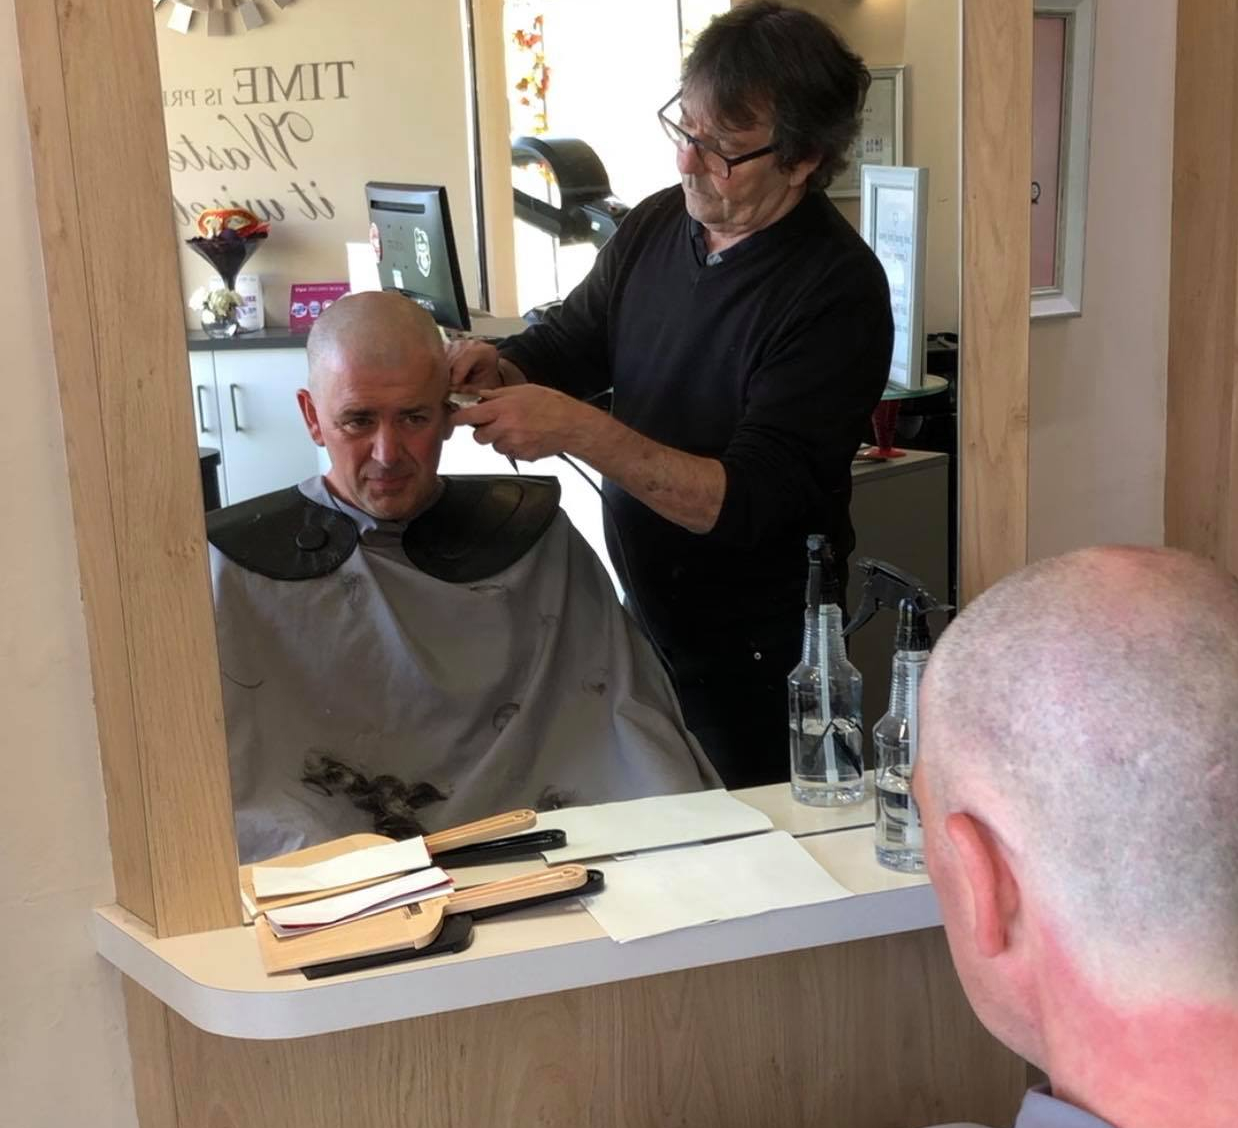 In the name of art and charity Hastleonian Steve gets 'the chop'